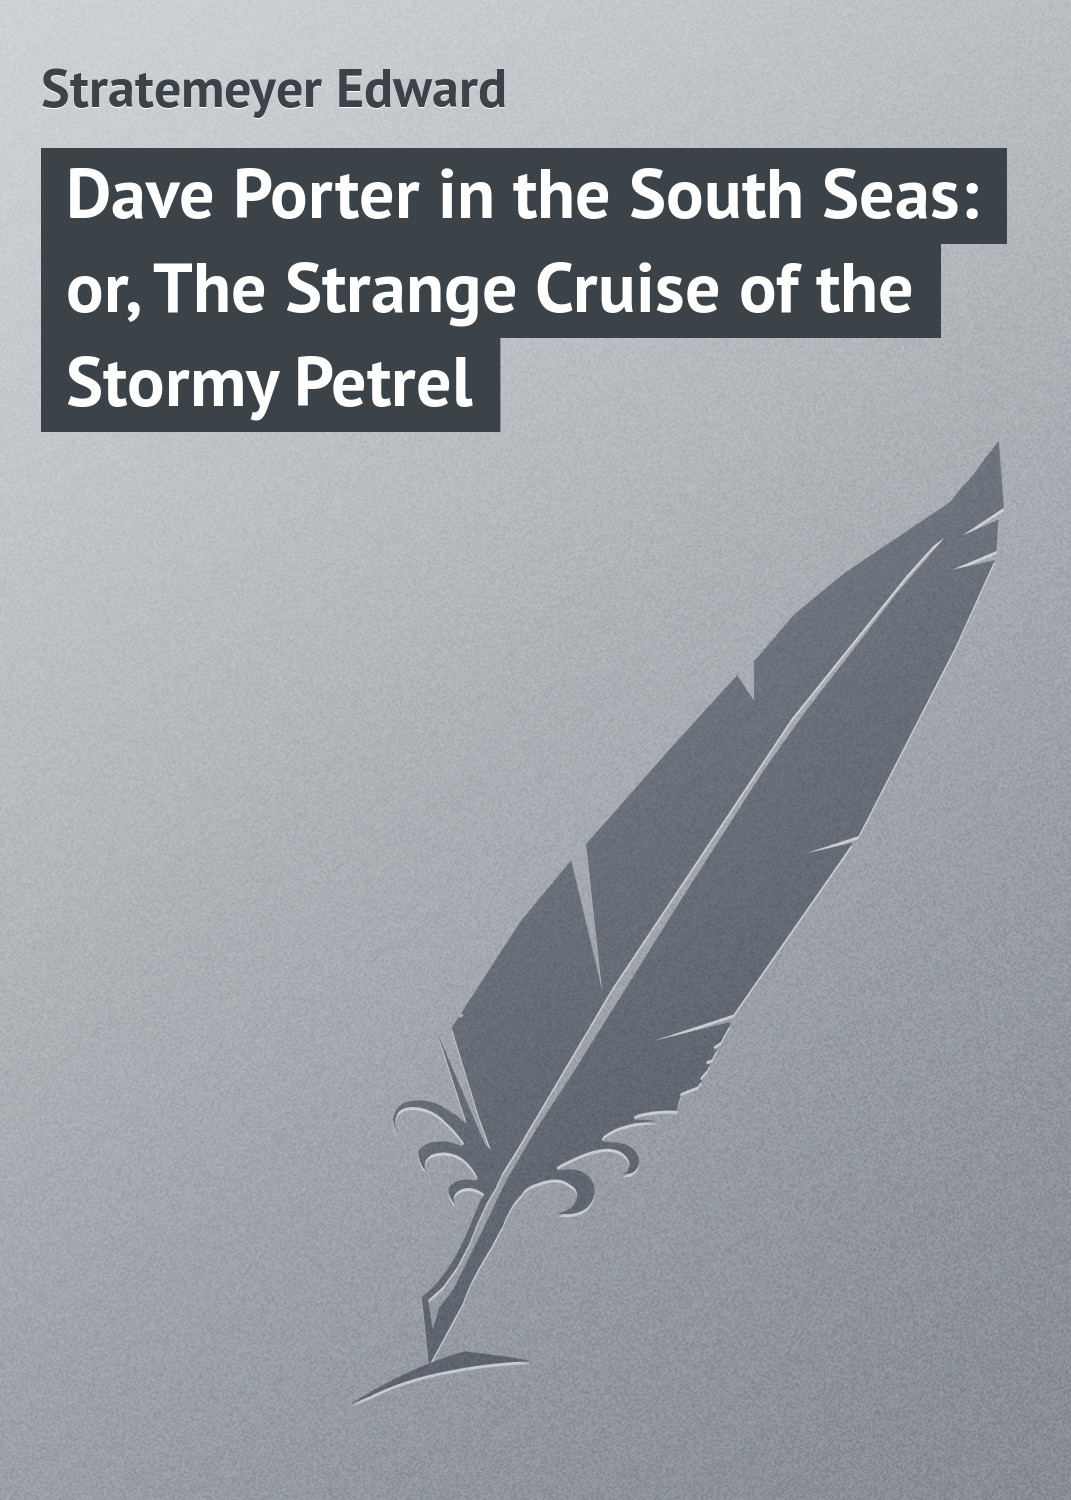 лучшая цена Stratemeyer Edward Dave Porter in the South Seas: or, The Strange Cruise of the Stormy Petrel